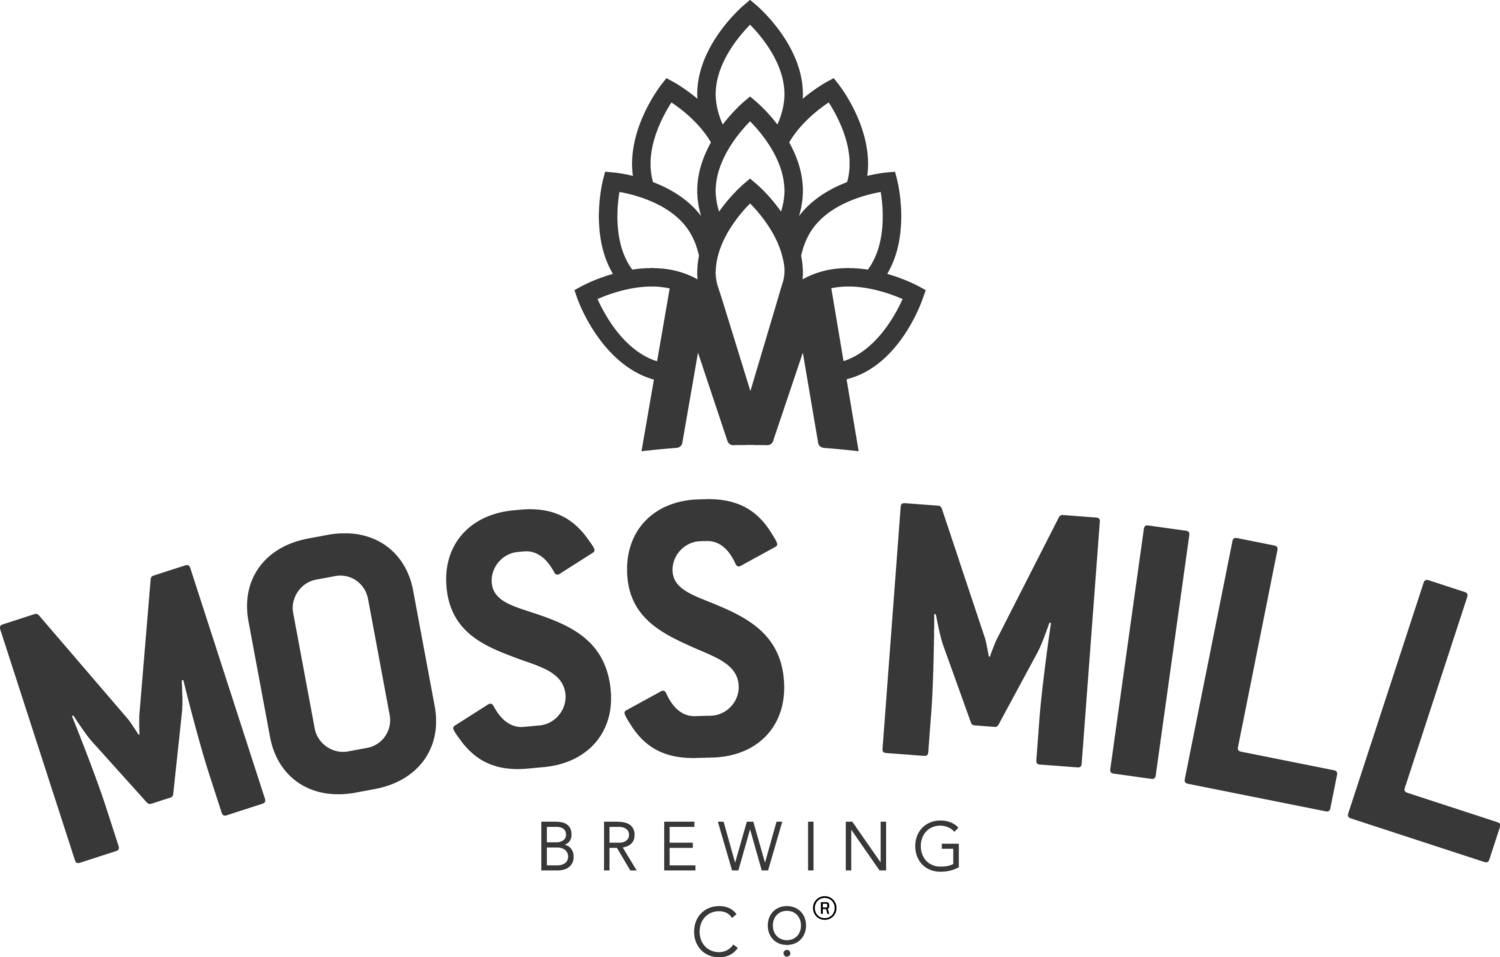 Moss Mill Brewing Company